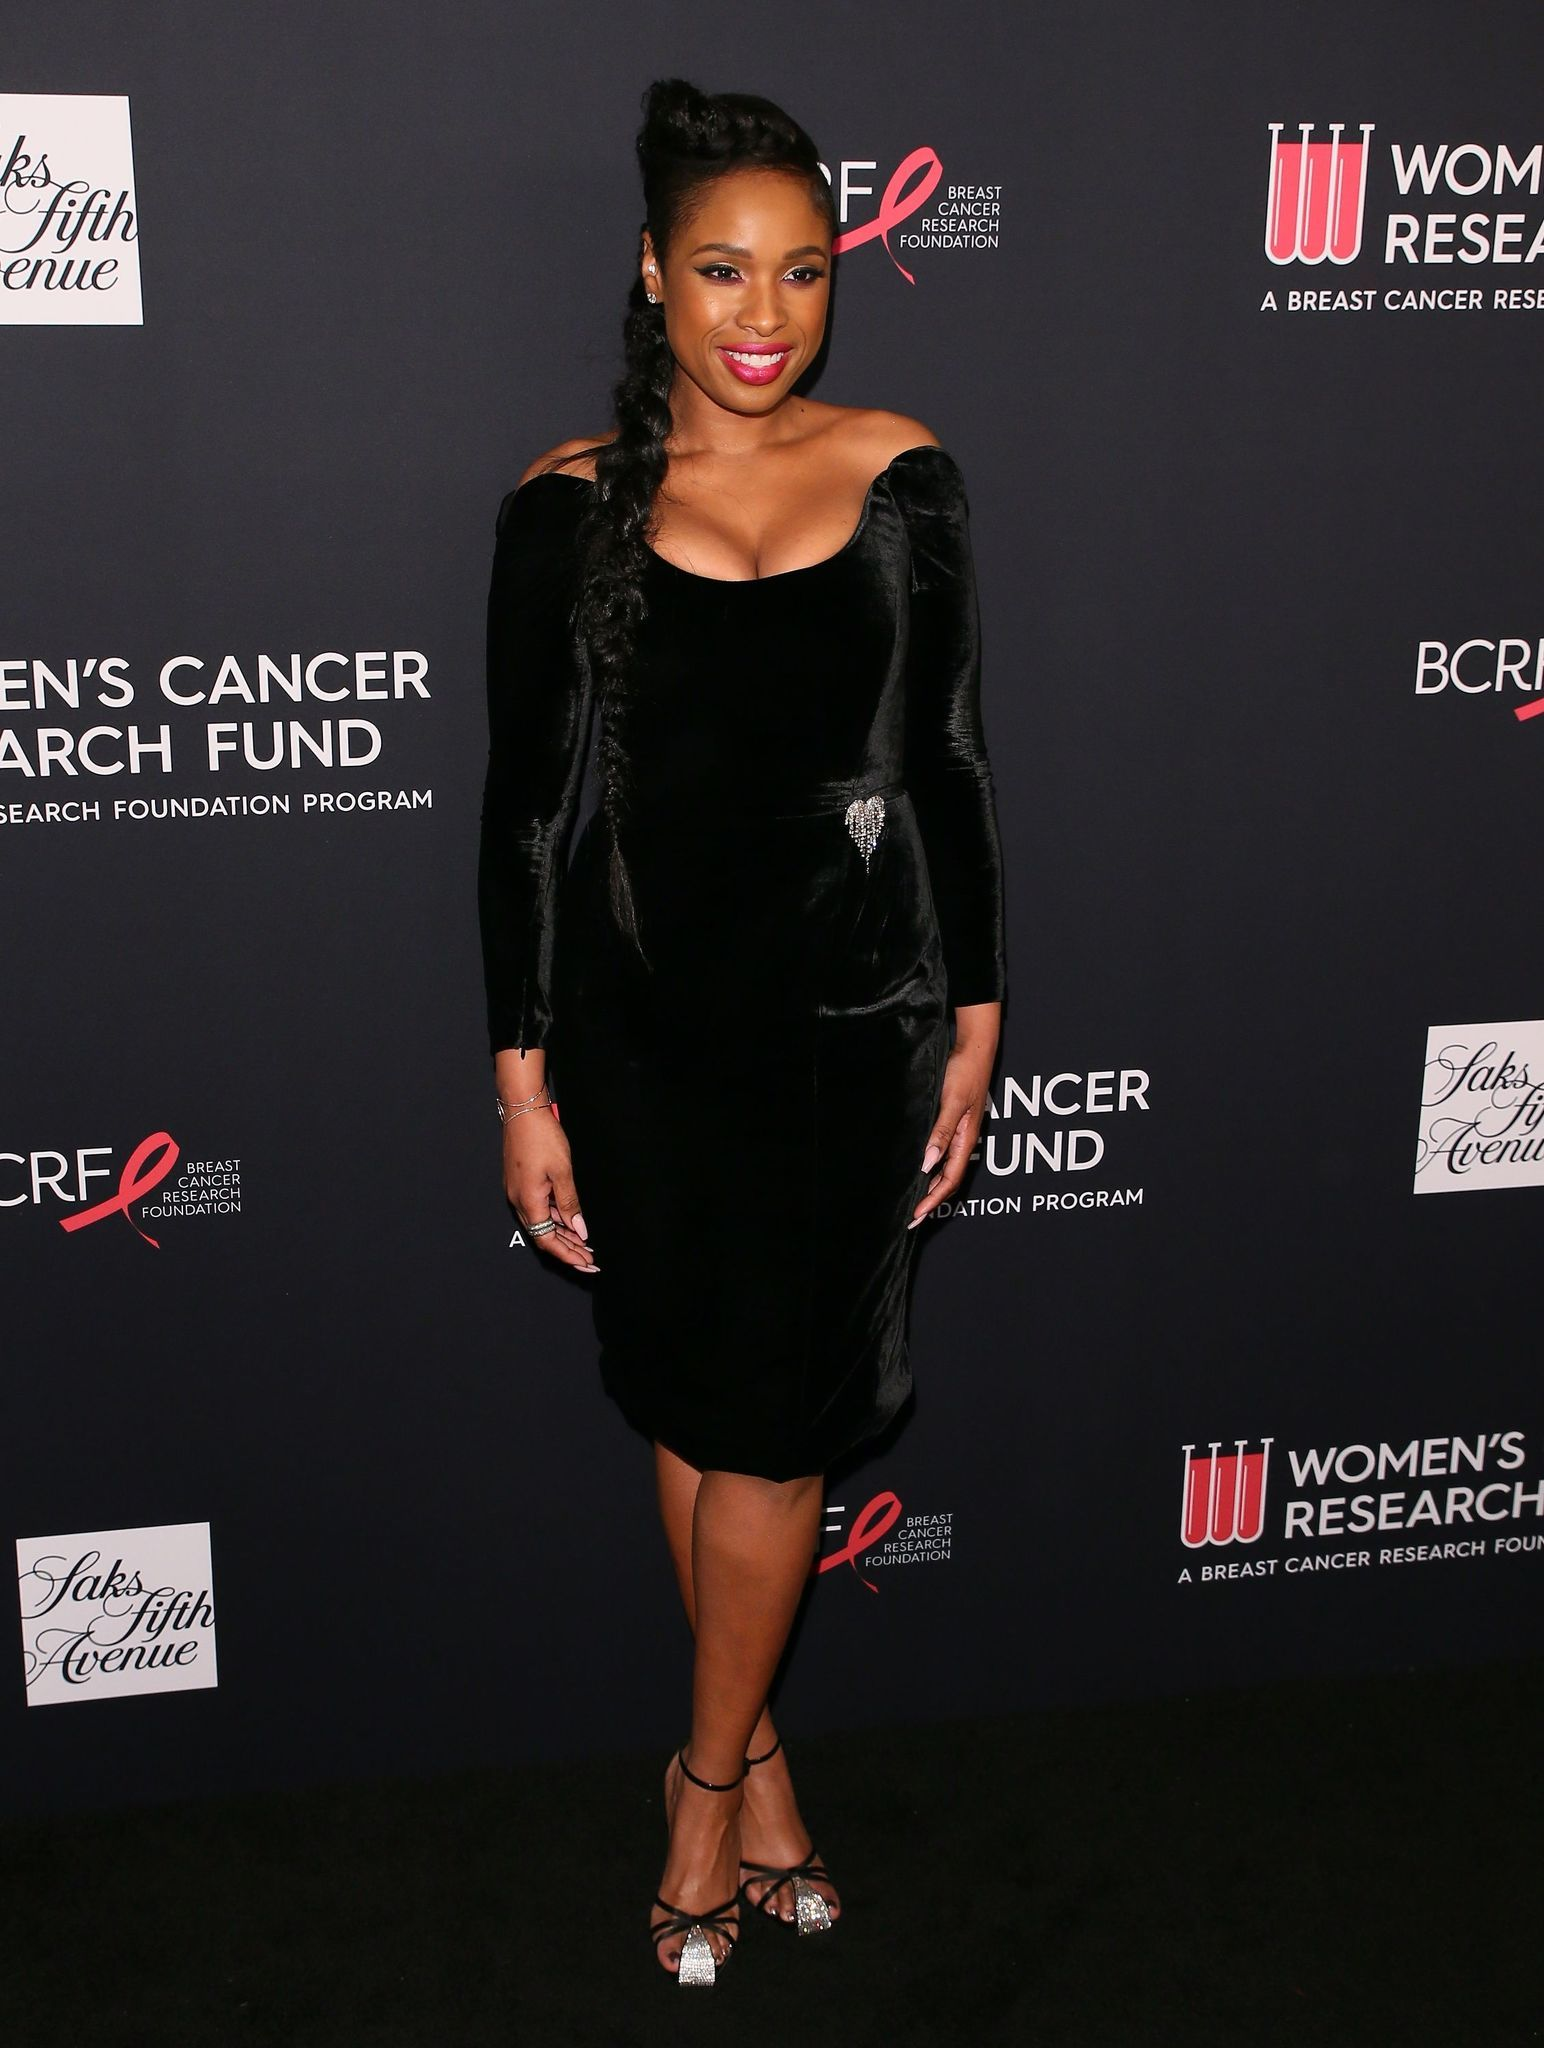 ENTERTAINMENT-US-FUNDRAISER-RESEARCH-HEALTH-WOMEN